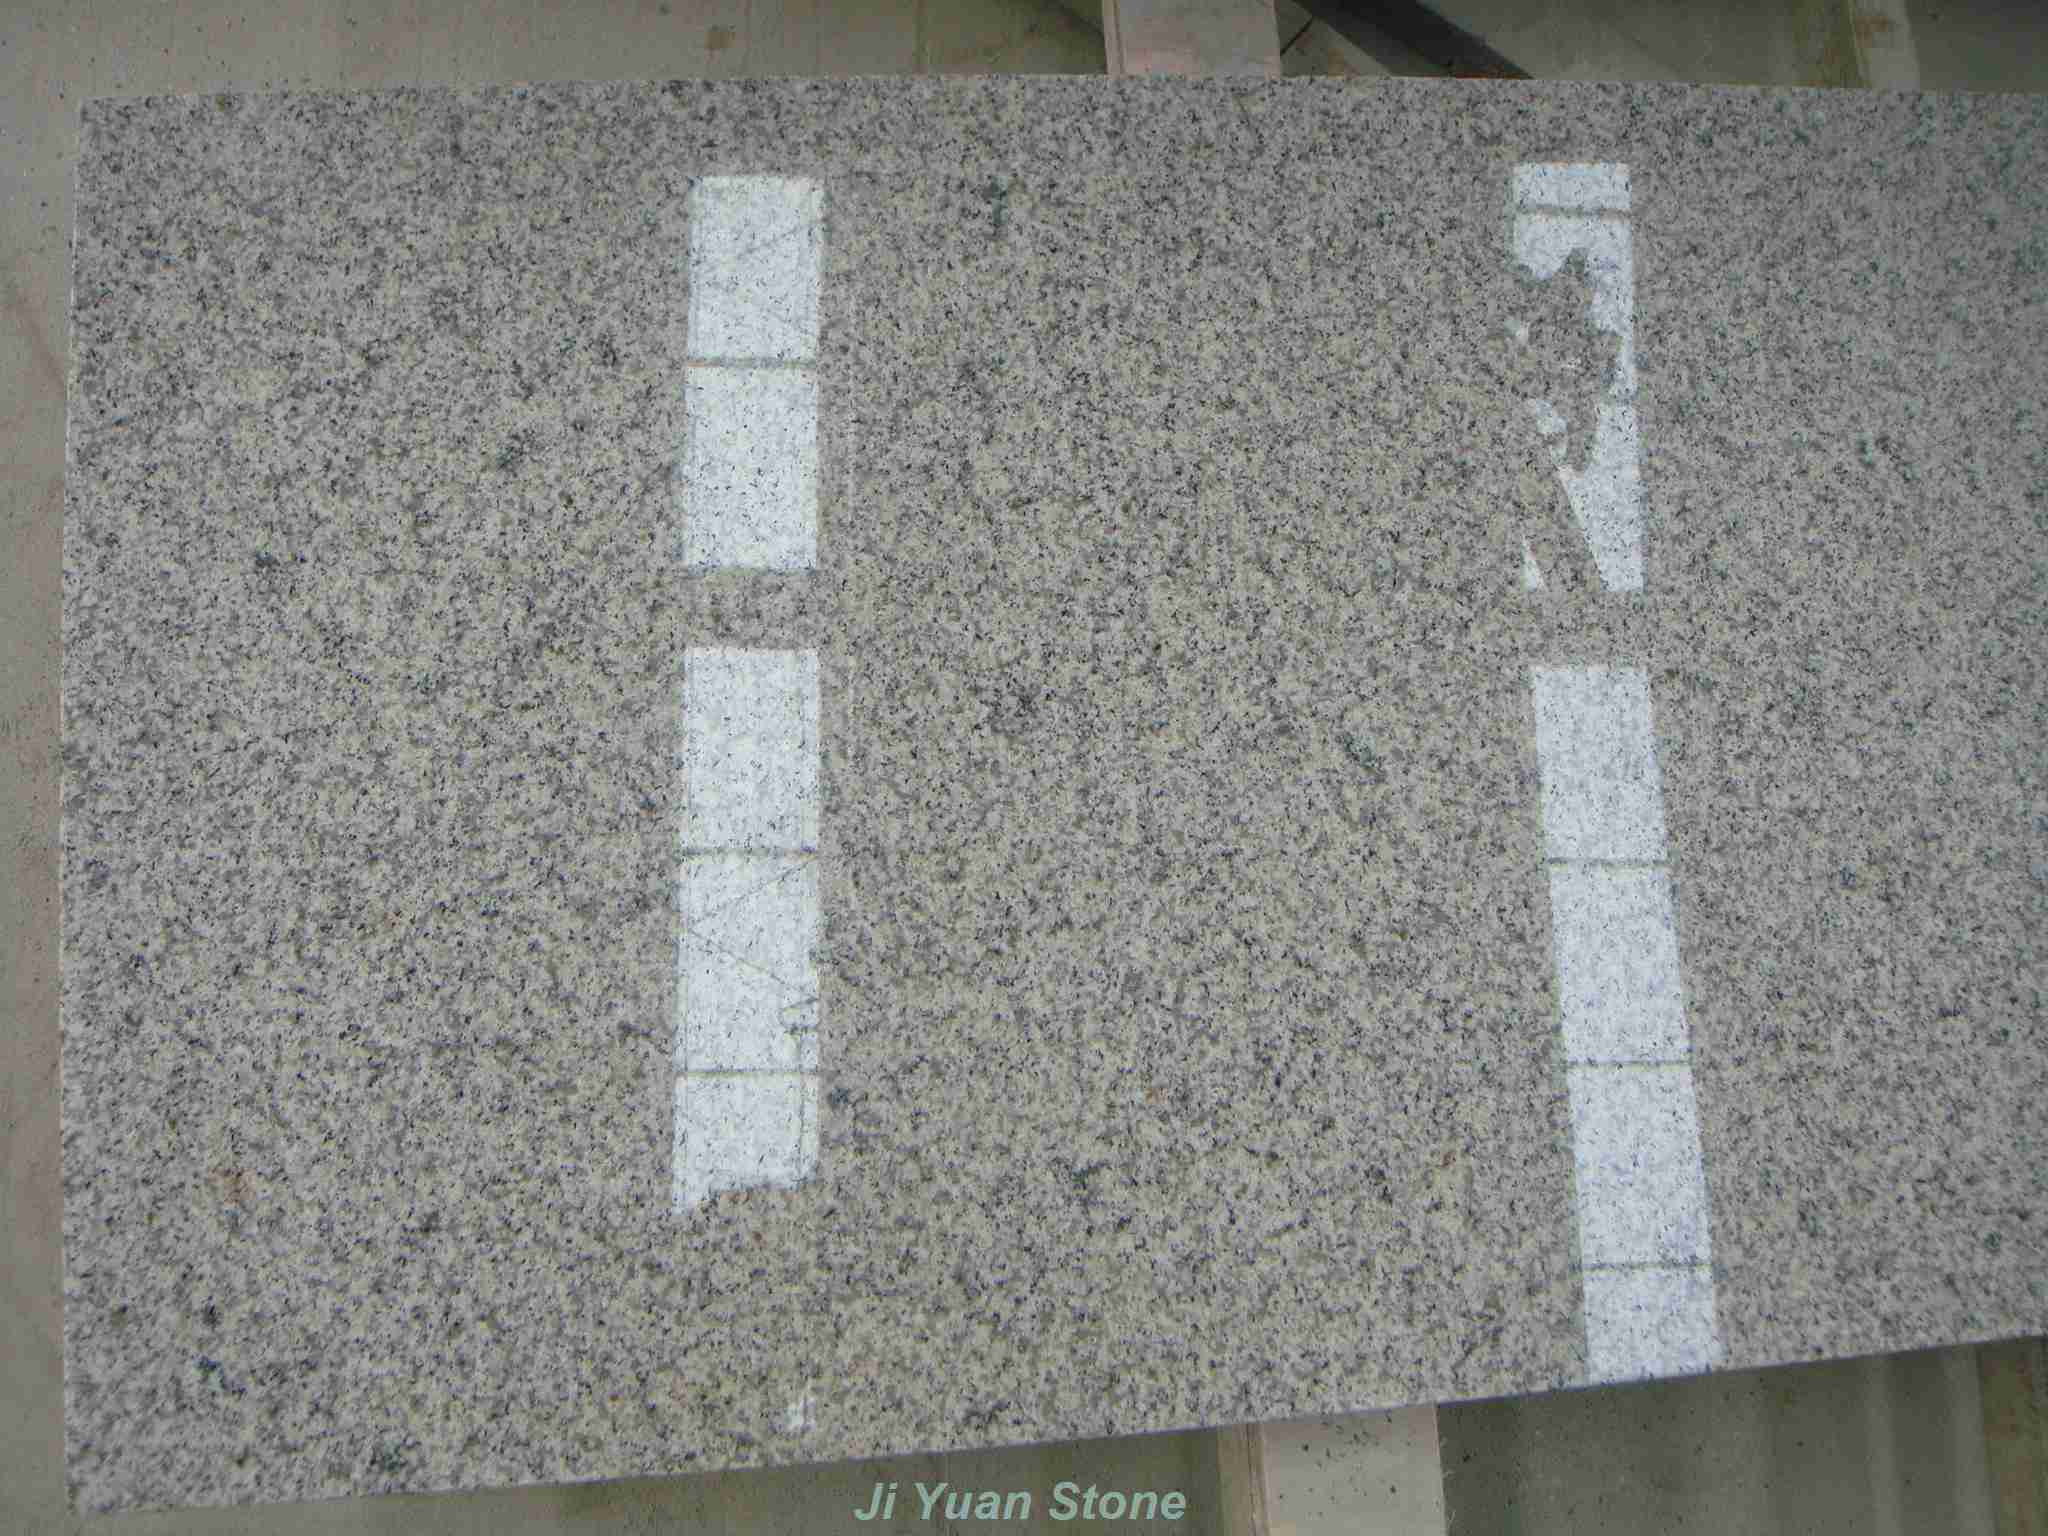 Grey granite colors,cheap slabs,cheapest granite colors,granite tiles for sale,granite stairs,g603 granite,603 granite,cheap granite tiles,light grey granite,light grey granite tiles